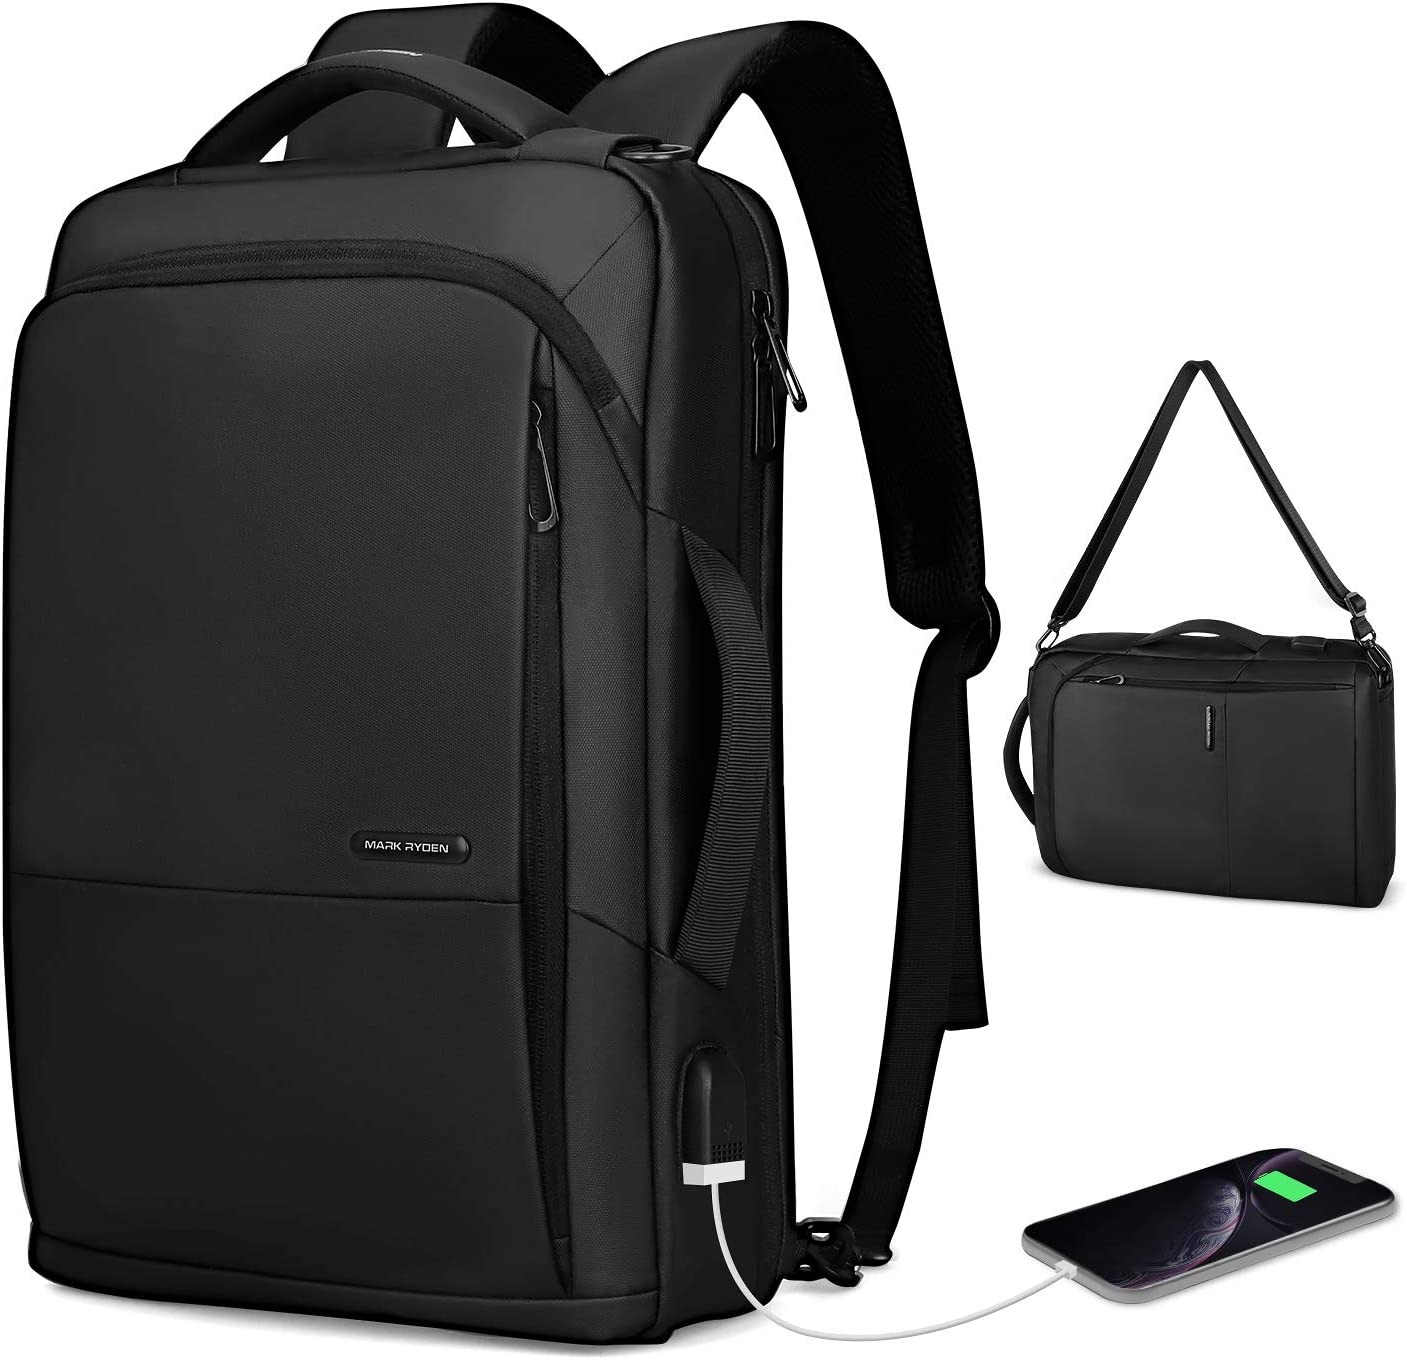 Markryden slim Laptop Backpack 3 in 1 backpack with USB Charging Port Water-Resistant School Travel Work Bag Fits 15.6 Inch Laptop